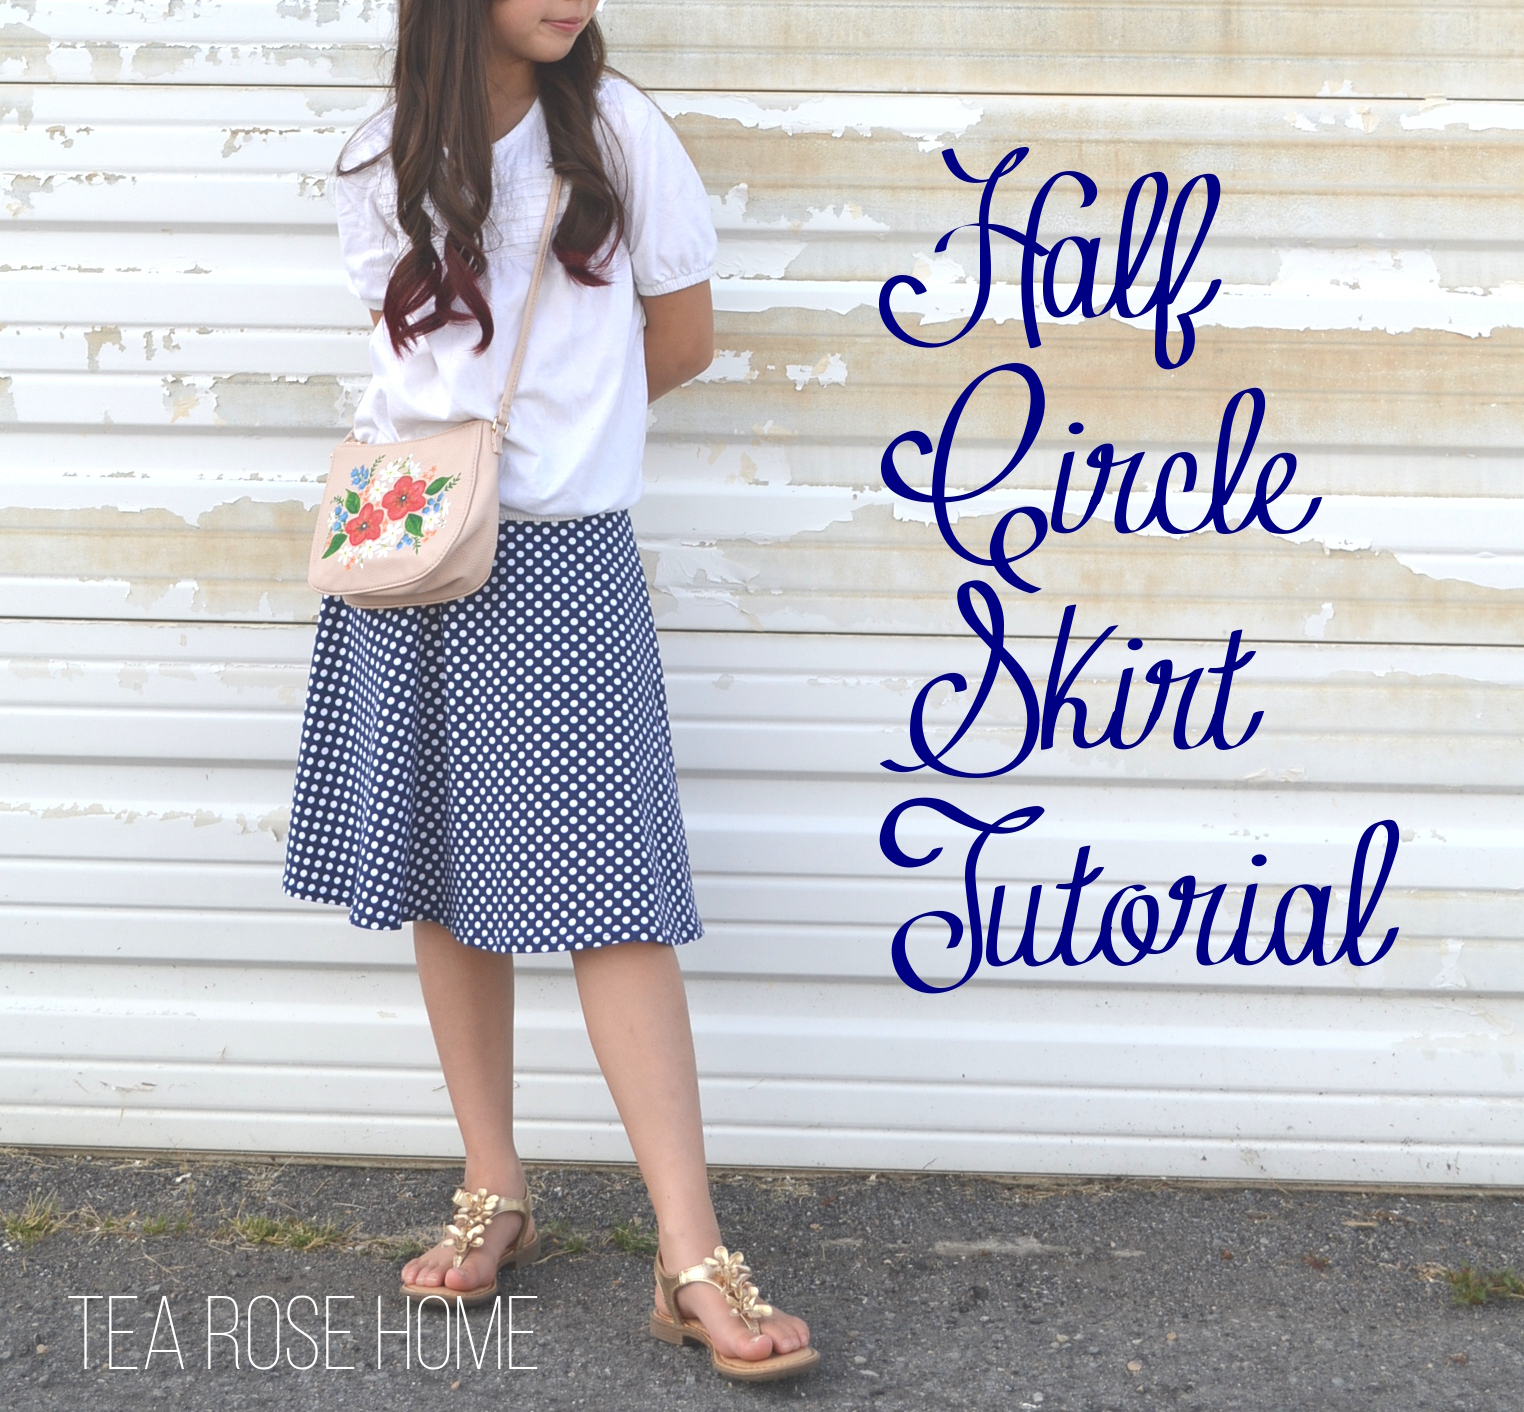 Tea rose home tutorial half circle skirt skirting the issue hello everyone i am participating in skirting the issue blog hop today what is skirting the issue it is a month long event where you are invited to sew bankloansurffo Image collections